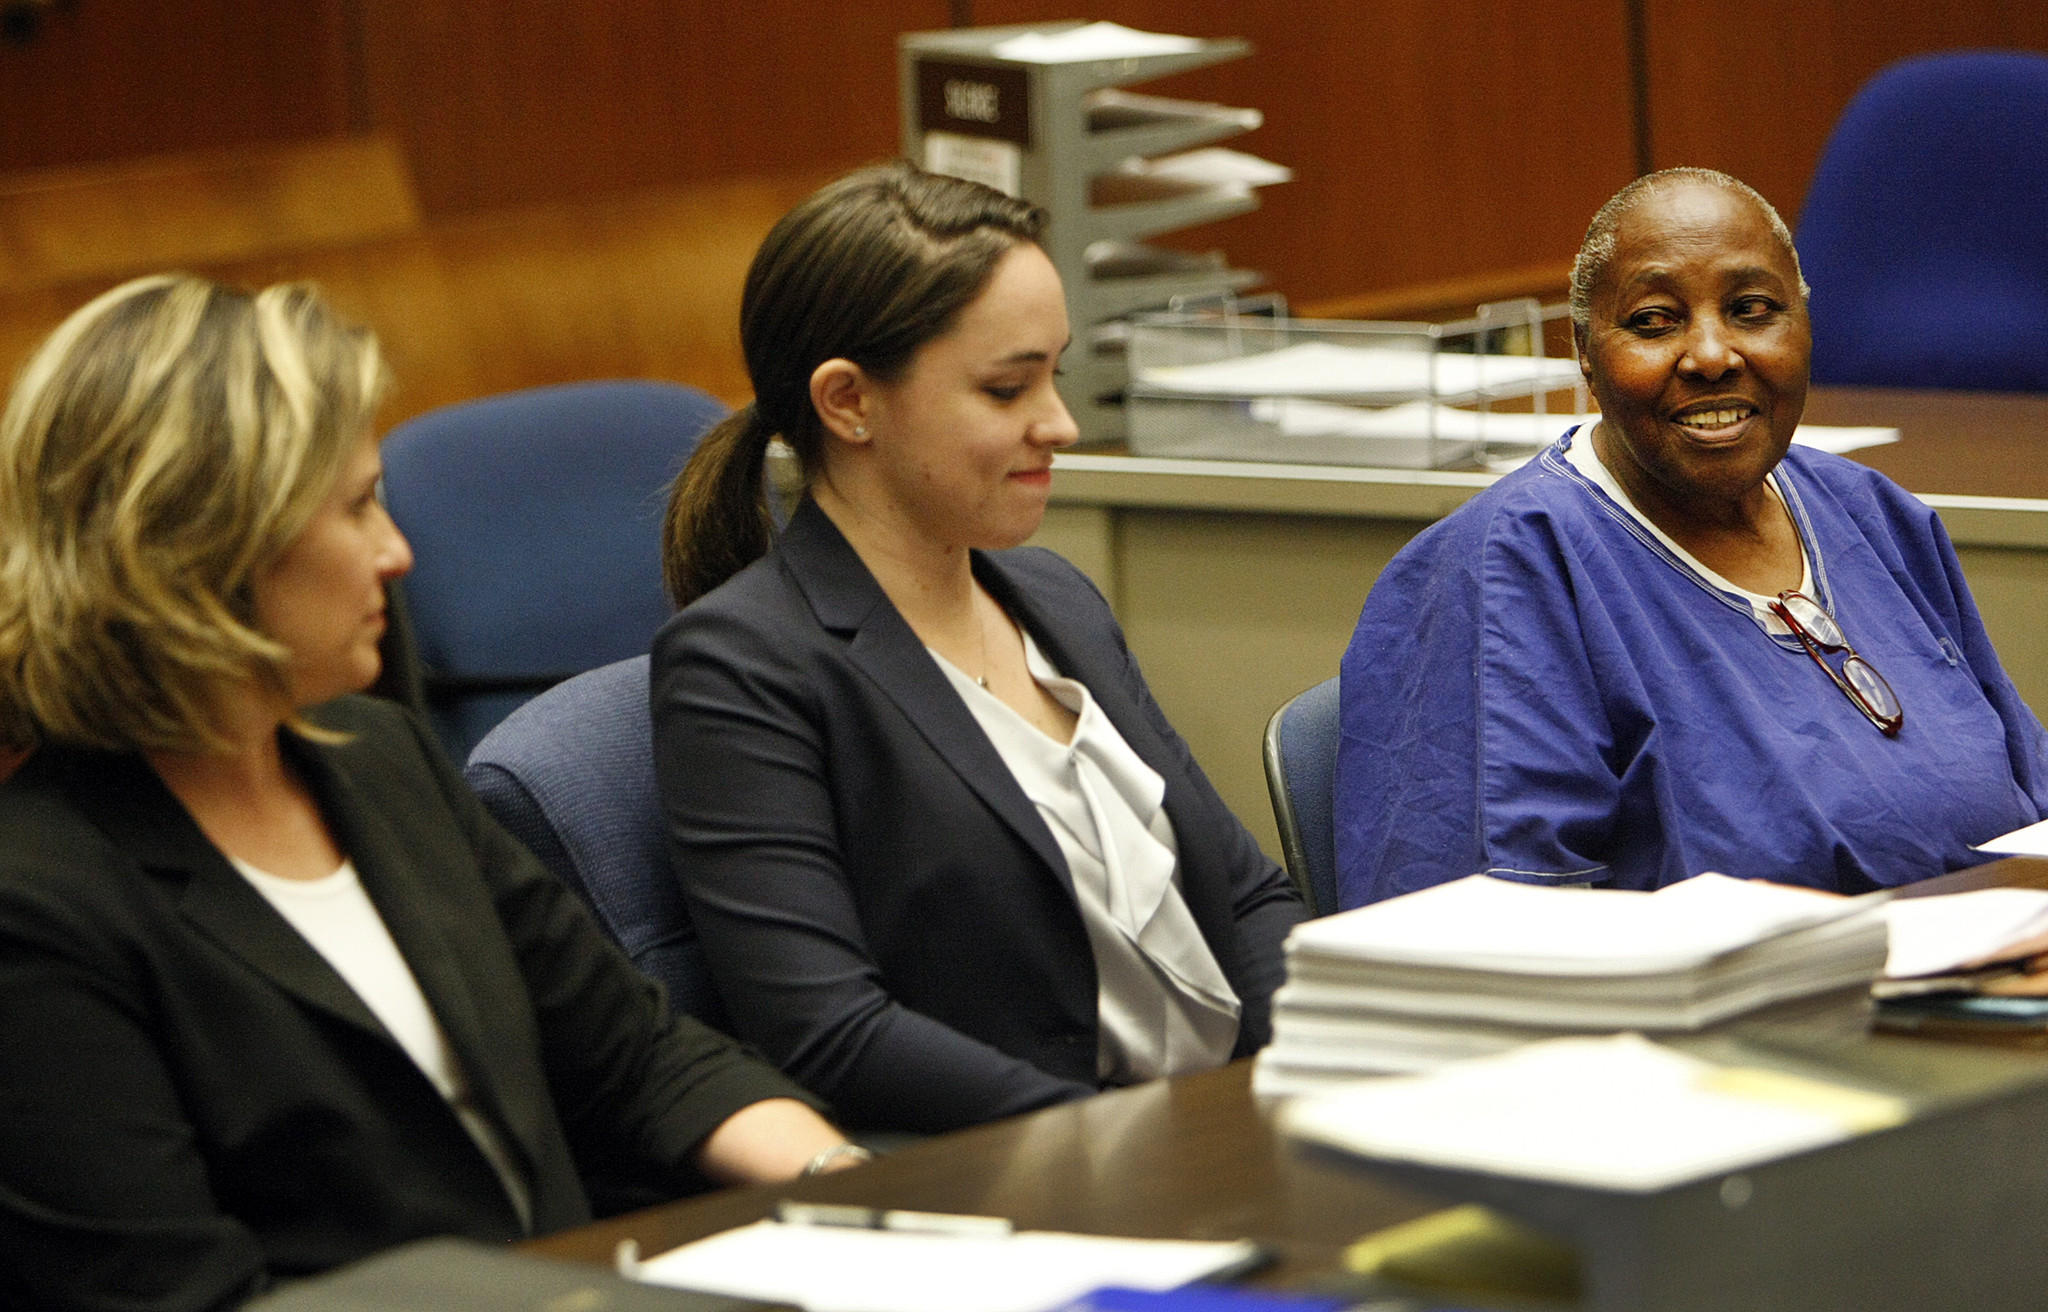 Mary Virginia Jones, right, appears in Los Angeles County Superior Court Monday to plead no contest to voluntary manslaughter with Laura Donaldson, middle, a USC certified law student, and attorney Heidi Rummel, left, a director in USC's Post-Conviction Justice Project.